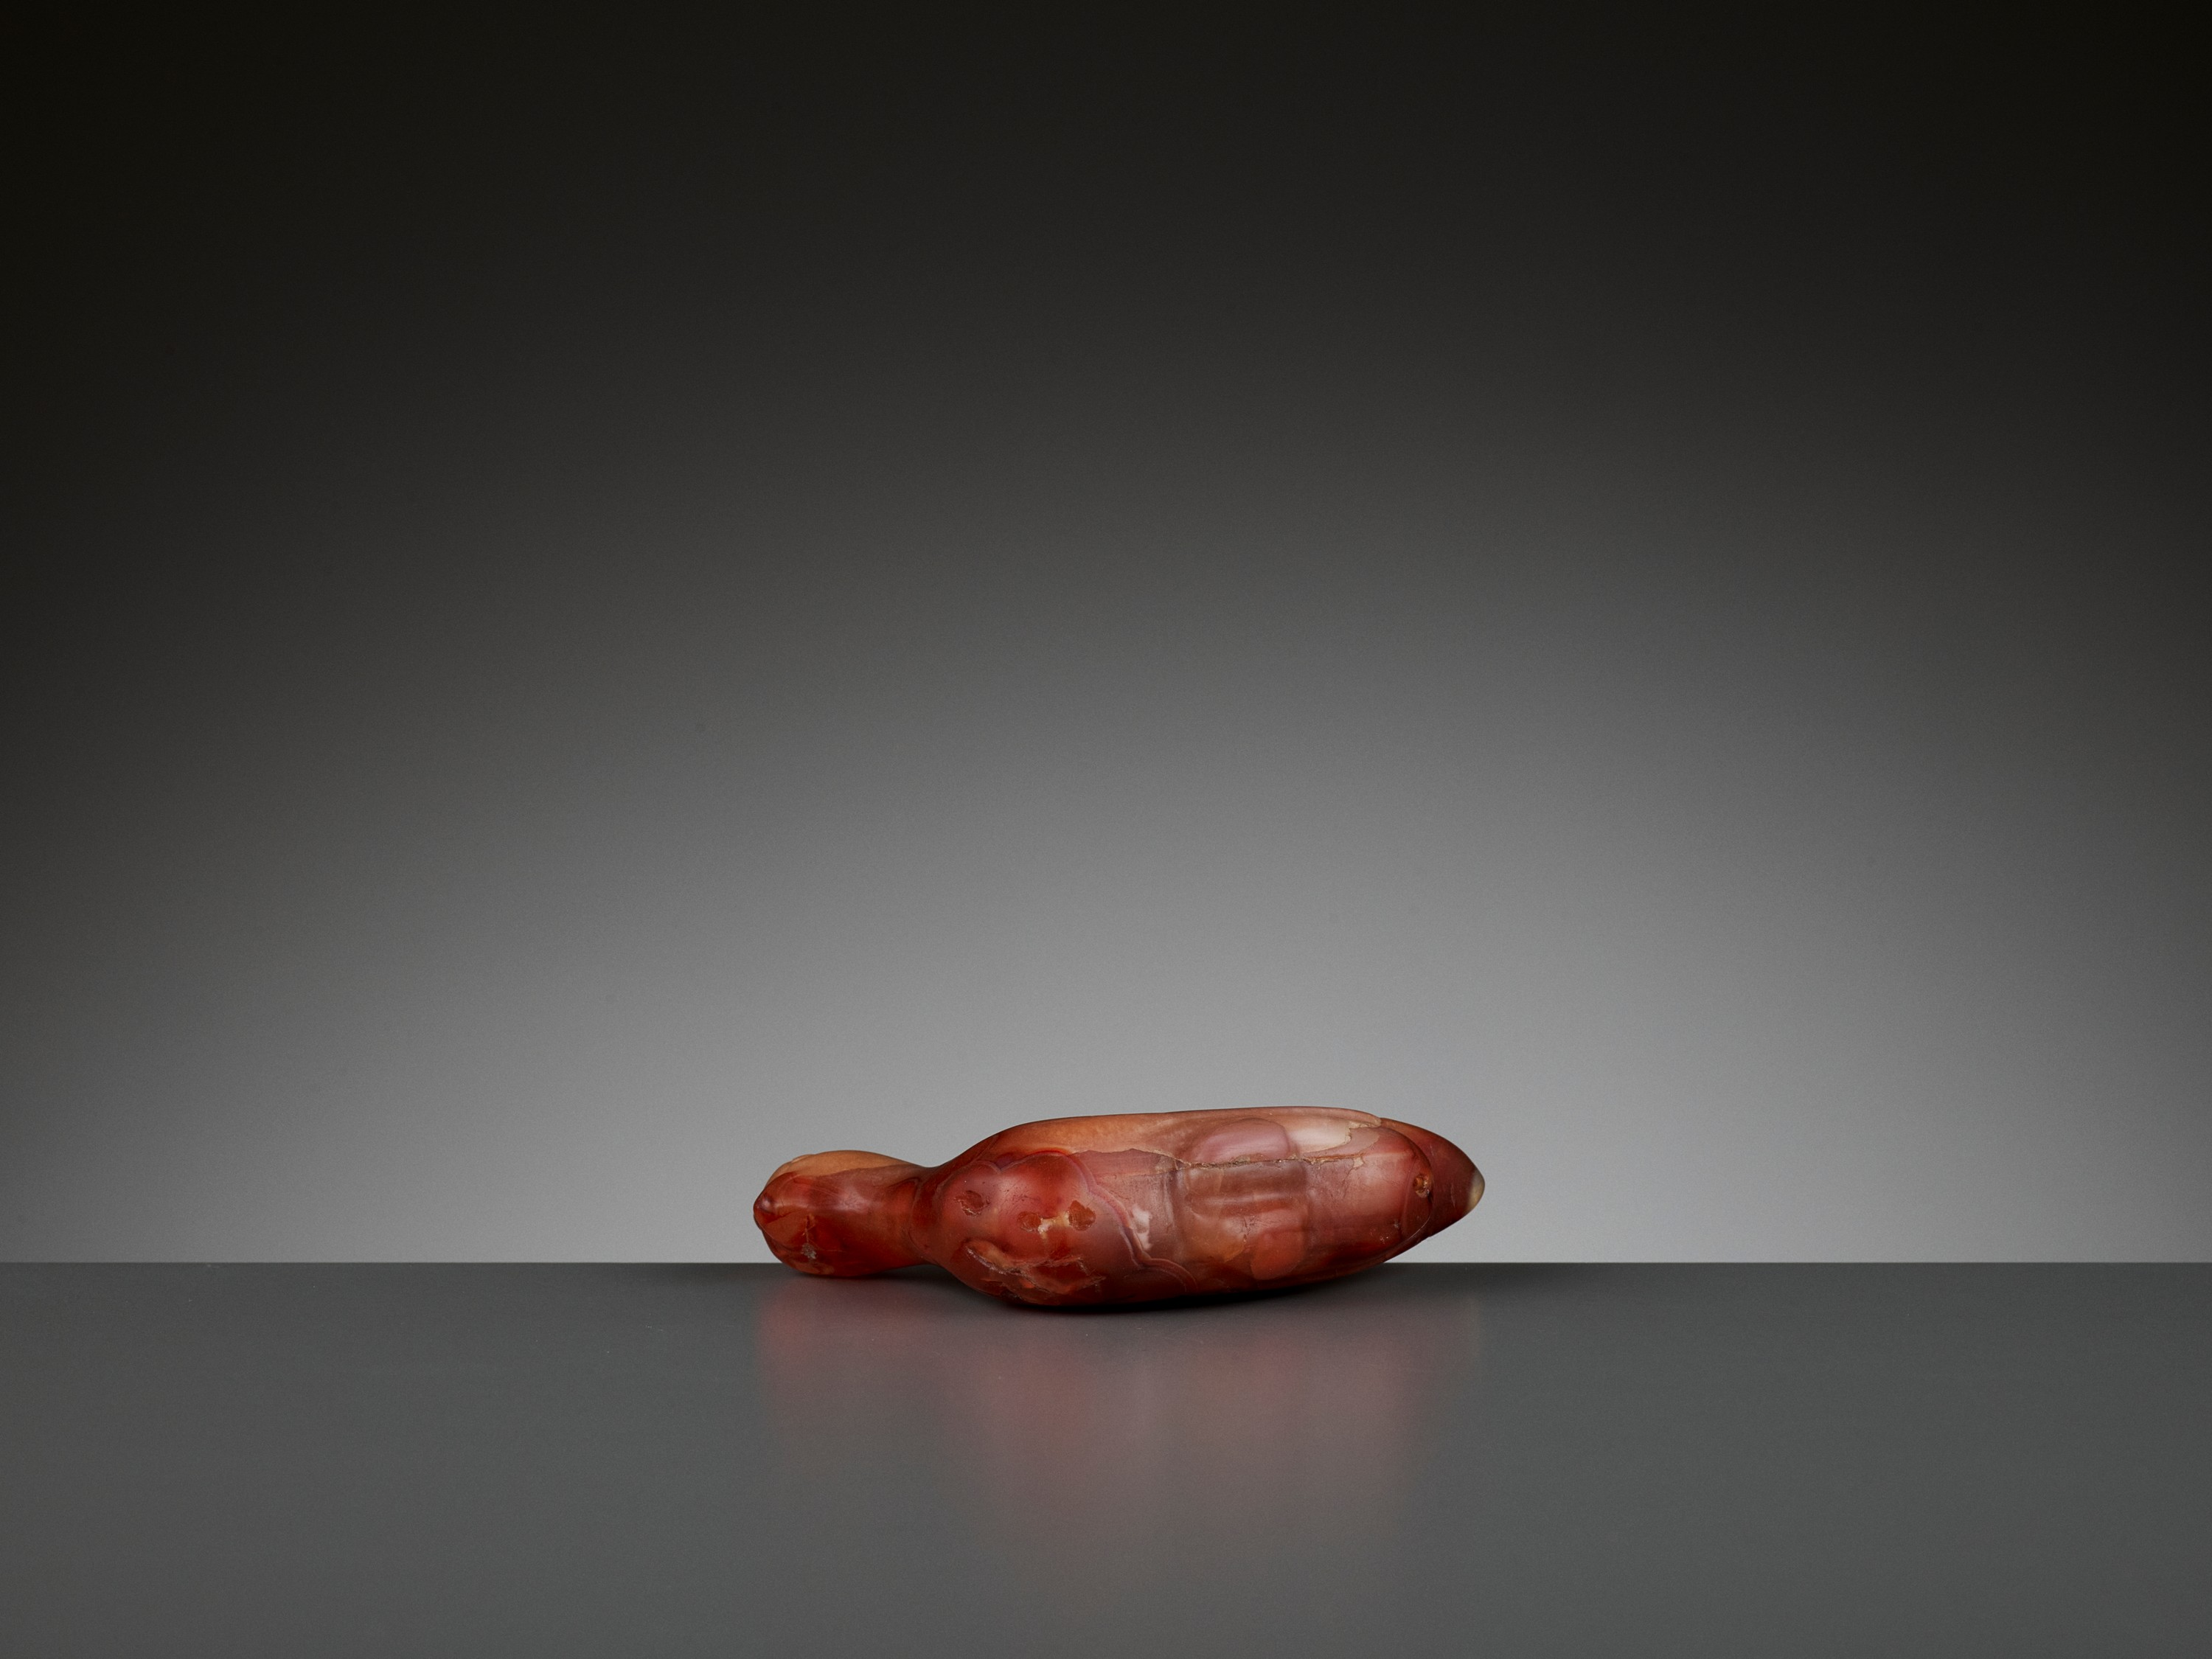 A CARNELIAN 'ROOSTER' PENDANT, 1ST MILLENNIUM AD - Image 7 of 8